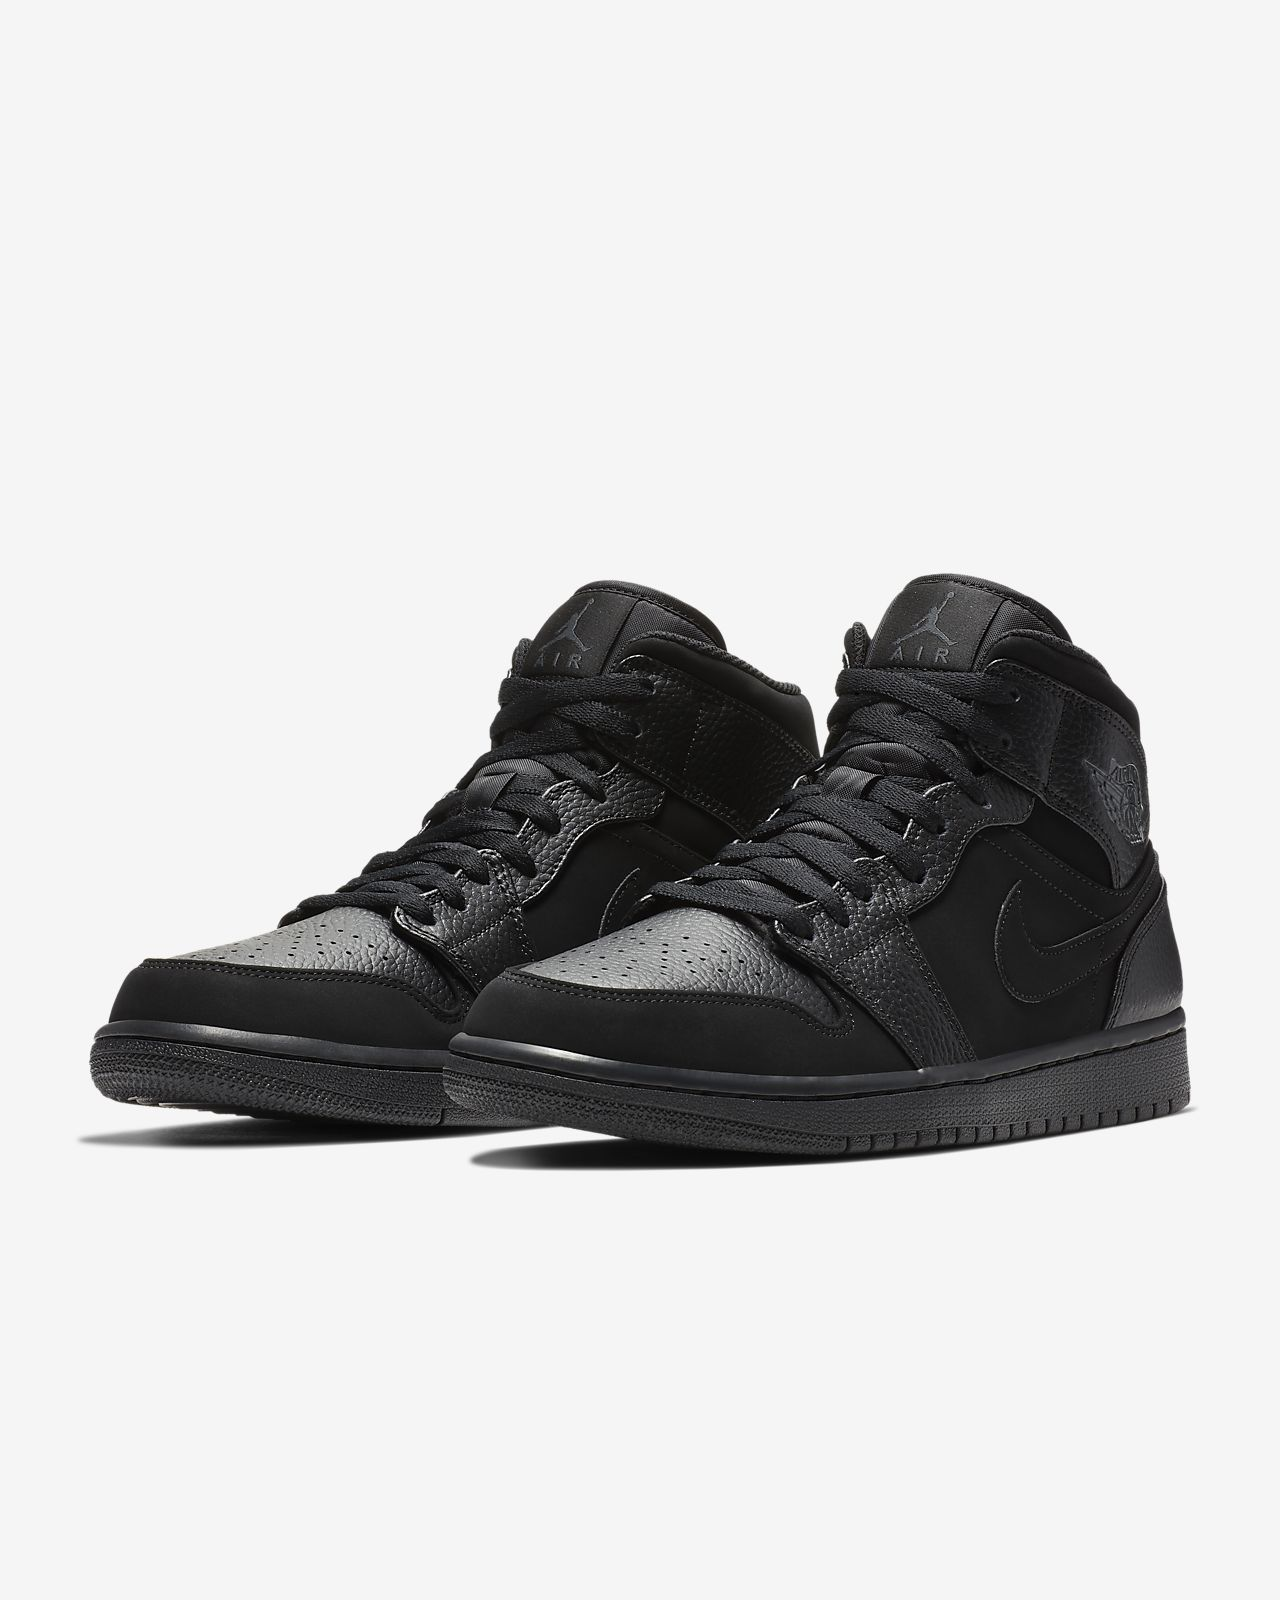 972833f49c9c Air Jordan 1 Mid Men s Shoe. Nike.com HU